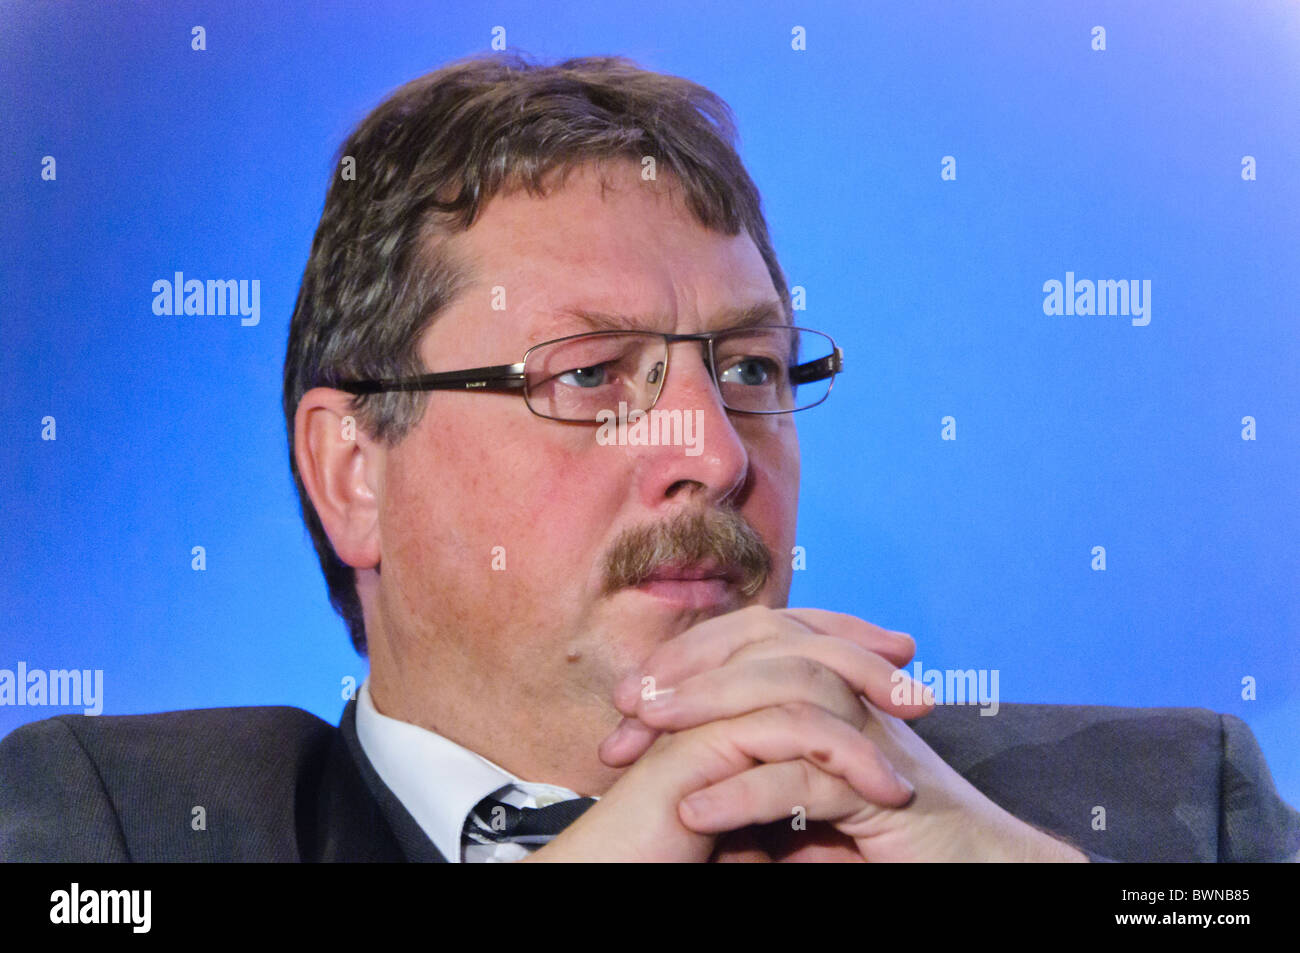 Sammy Wilson, DUP Party Conference. BELFAST 27/11/2010 - Stock Image